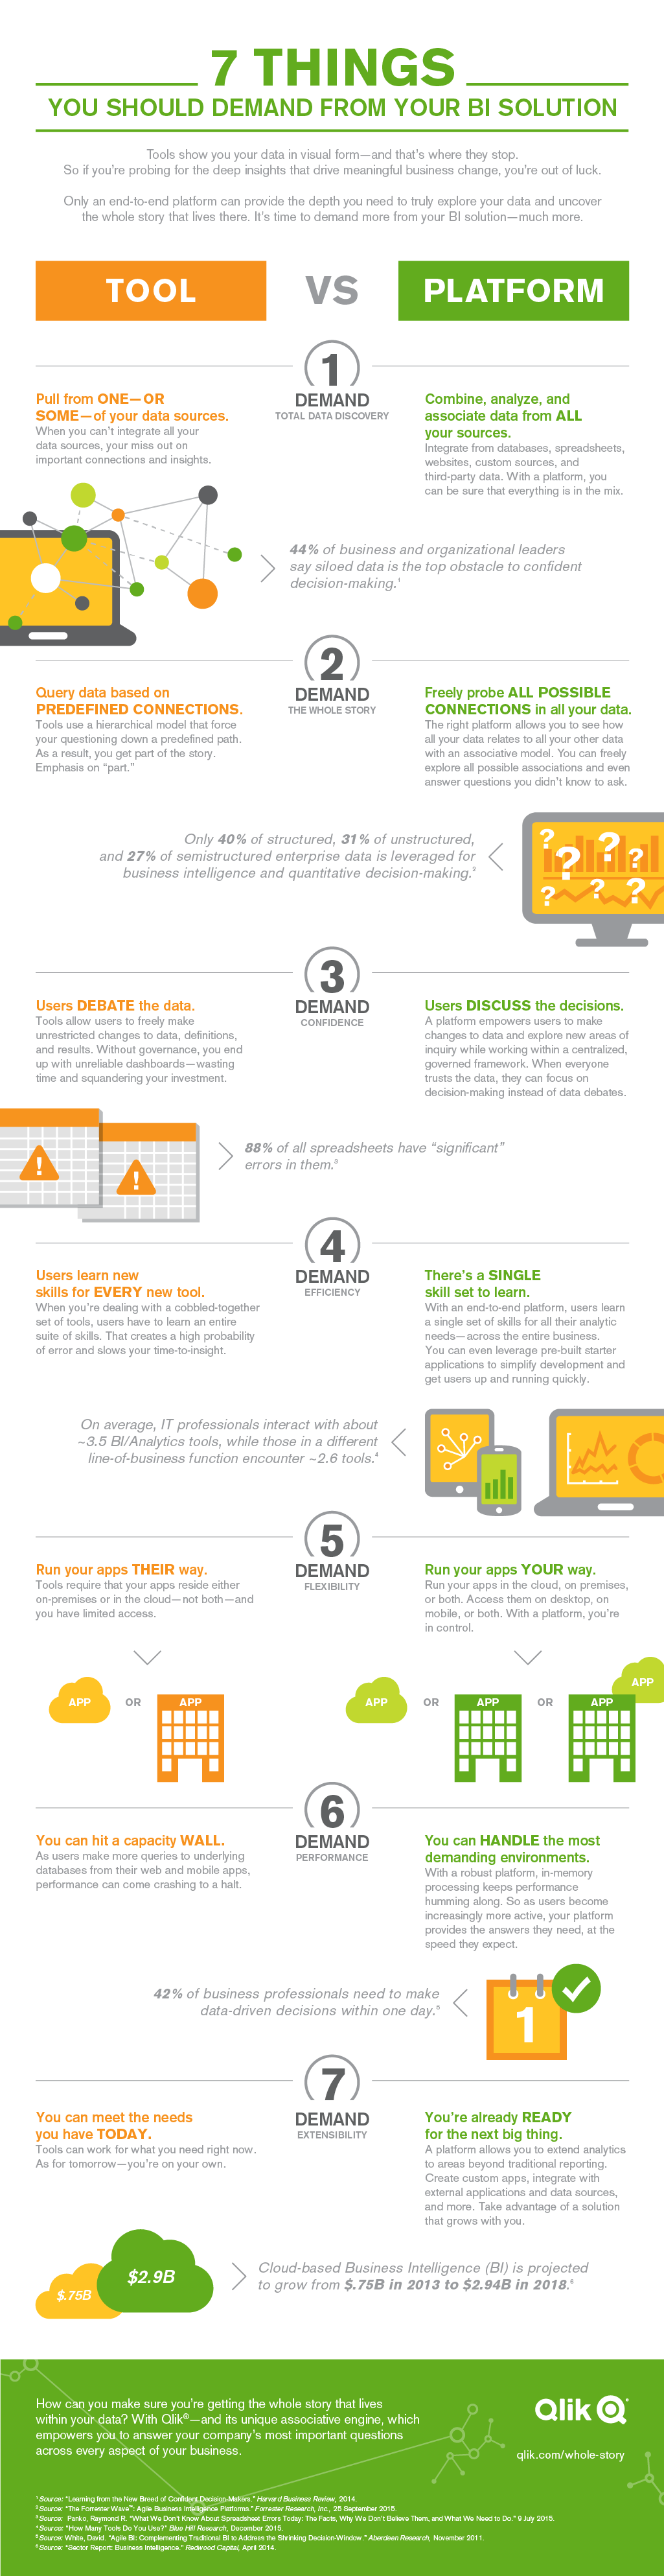 Infographic: 7 Things You Should Demand From Your BI Solution